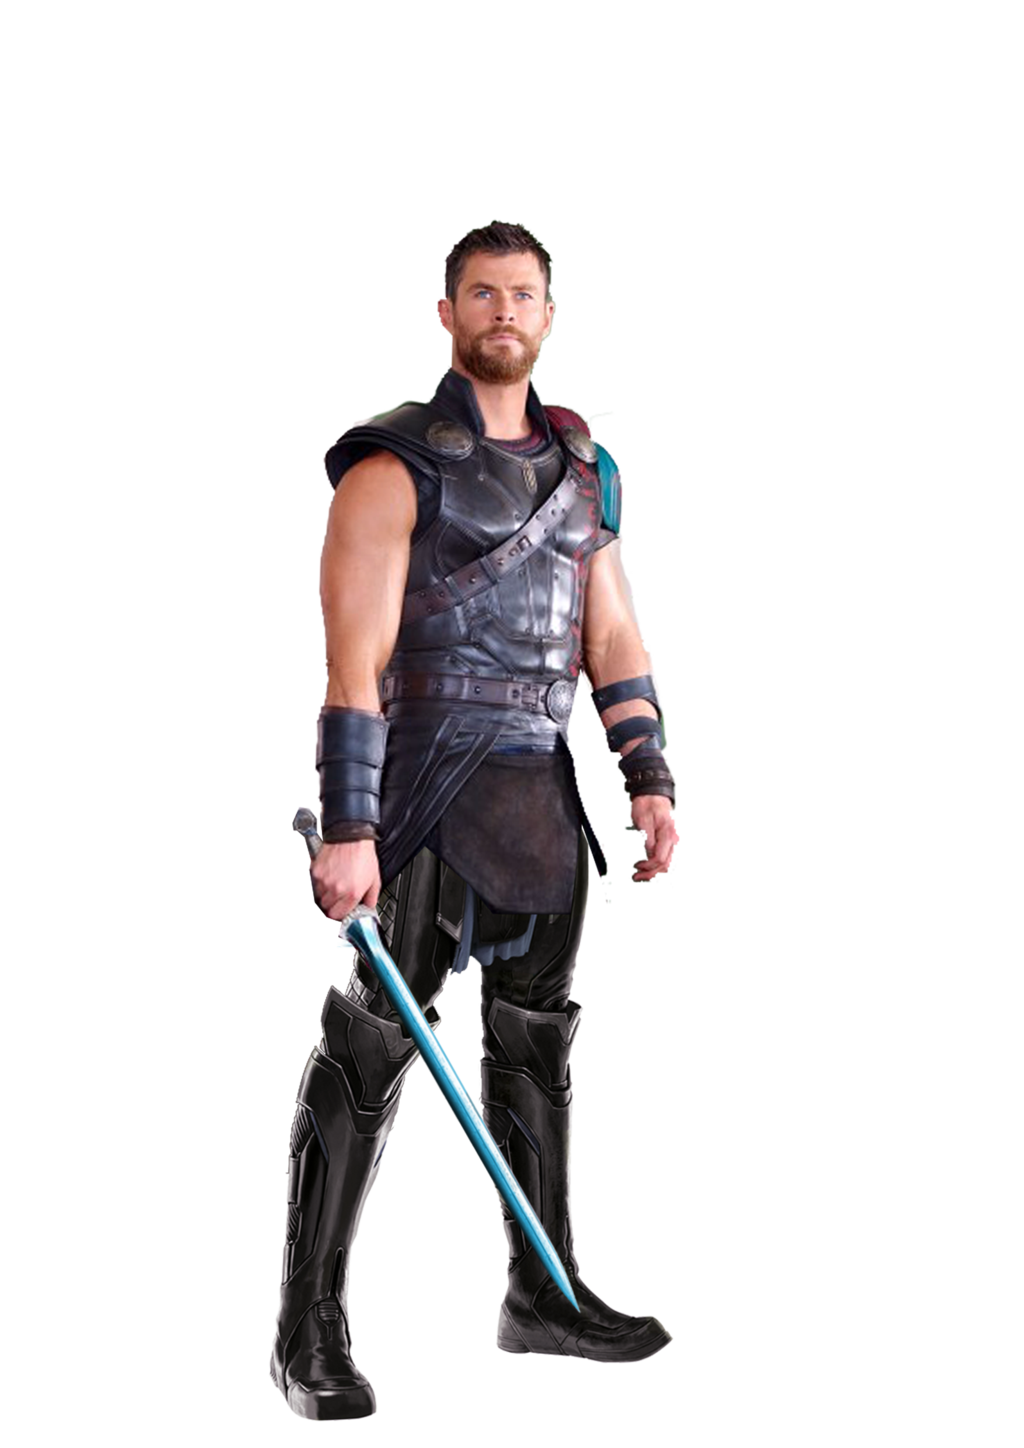 Thor ragnarok thor png. Transparent images all search